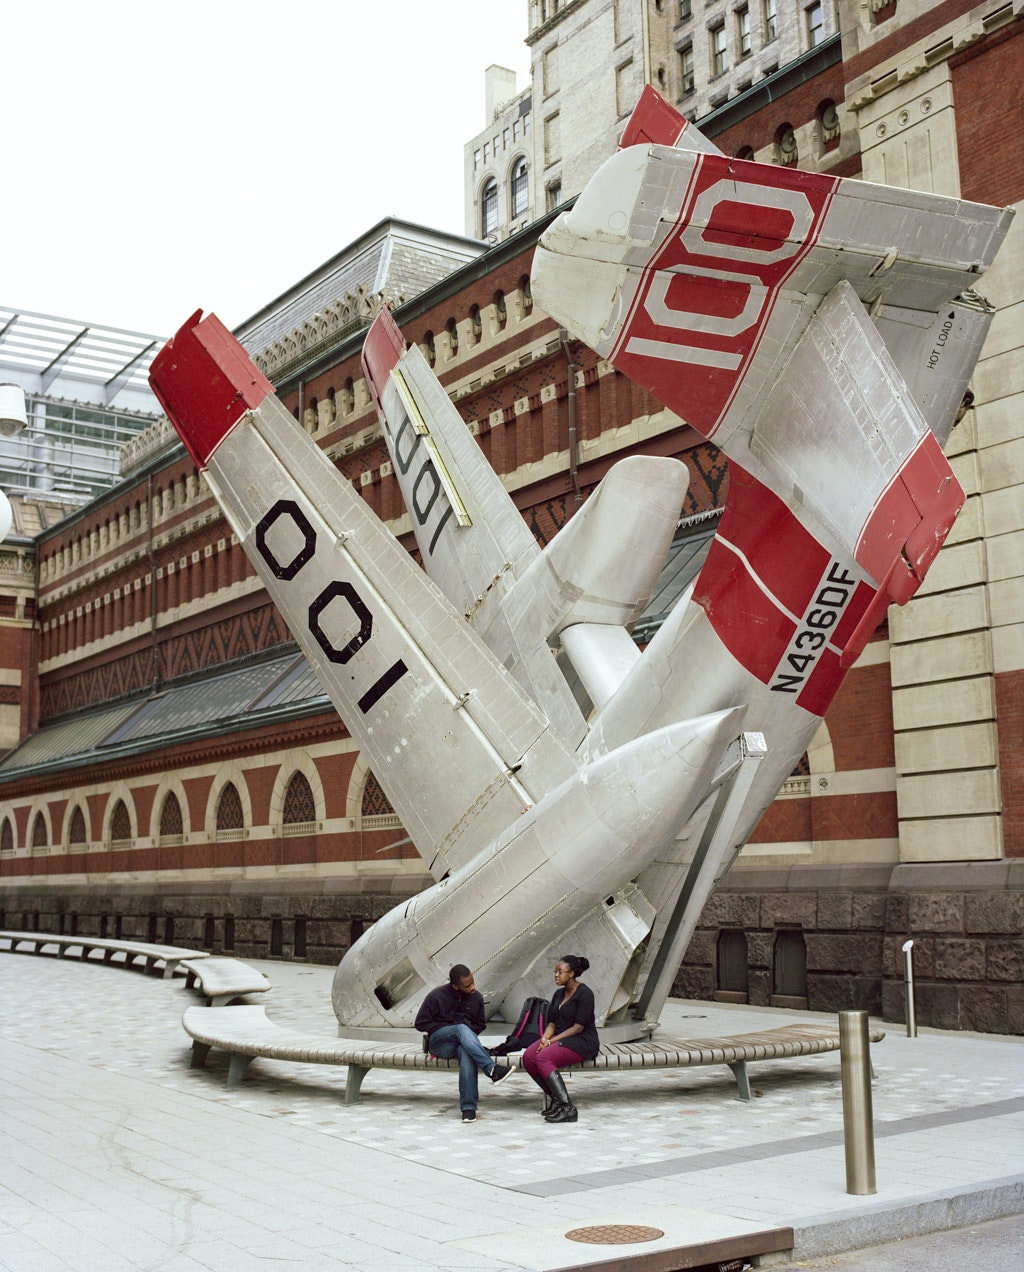 A former military plane was repurposed as a public art sculpture in the Lenfest Plaza at Pennsylvania Academy of the Fine Arts.